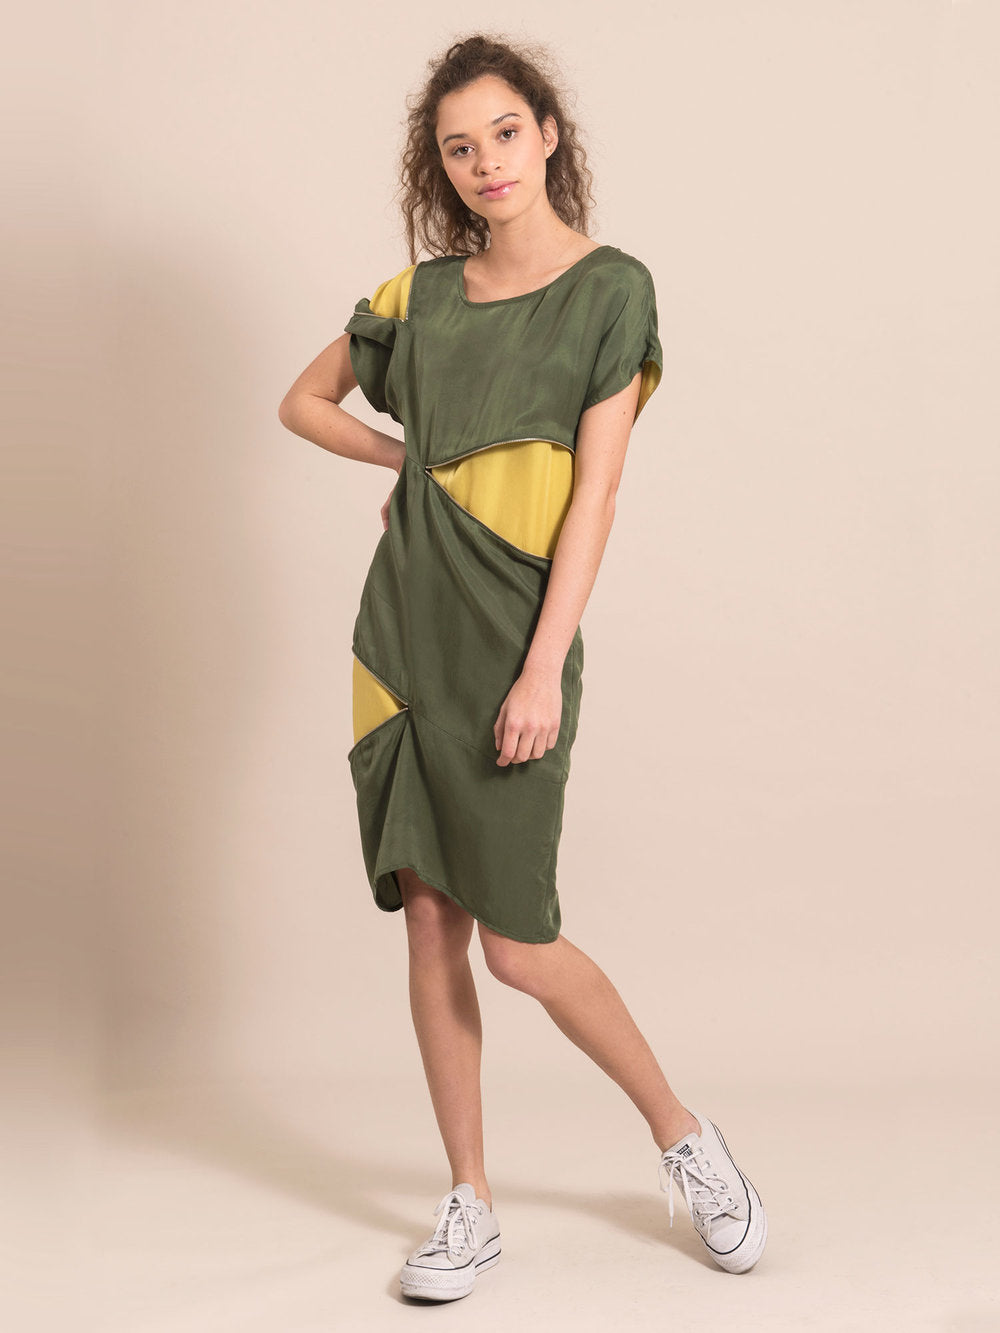 Woman wearing a military green above-the-knee day dress with three zippers that open and expose a bright yellow lining